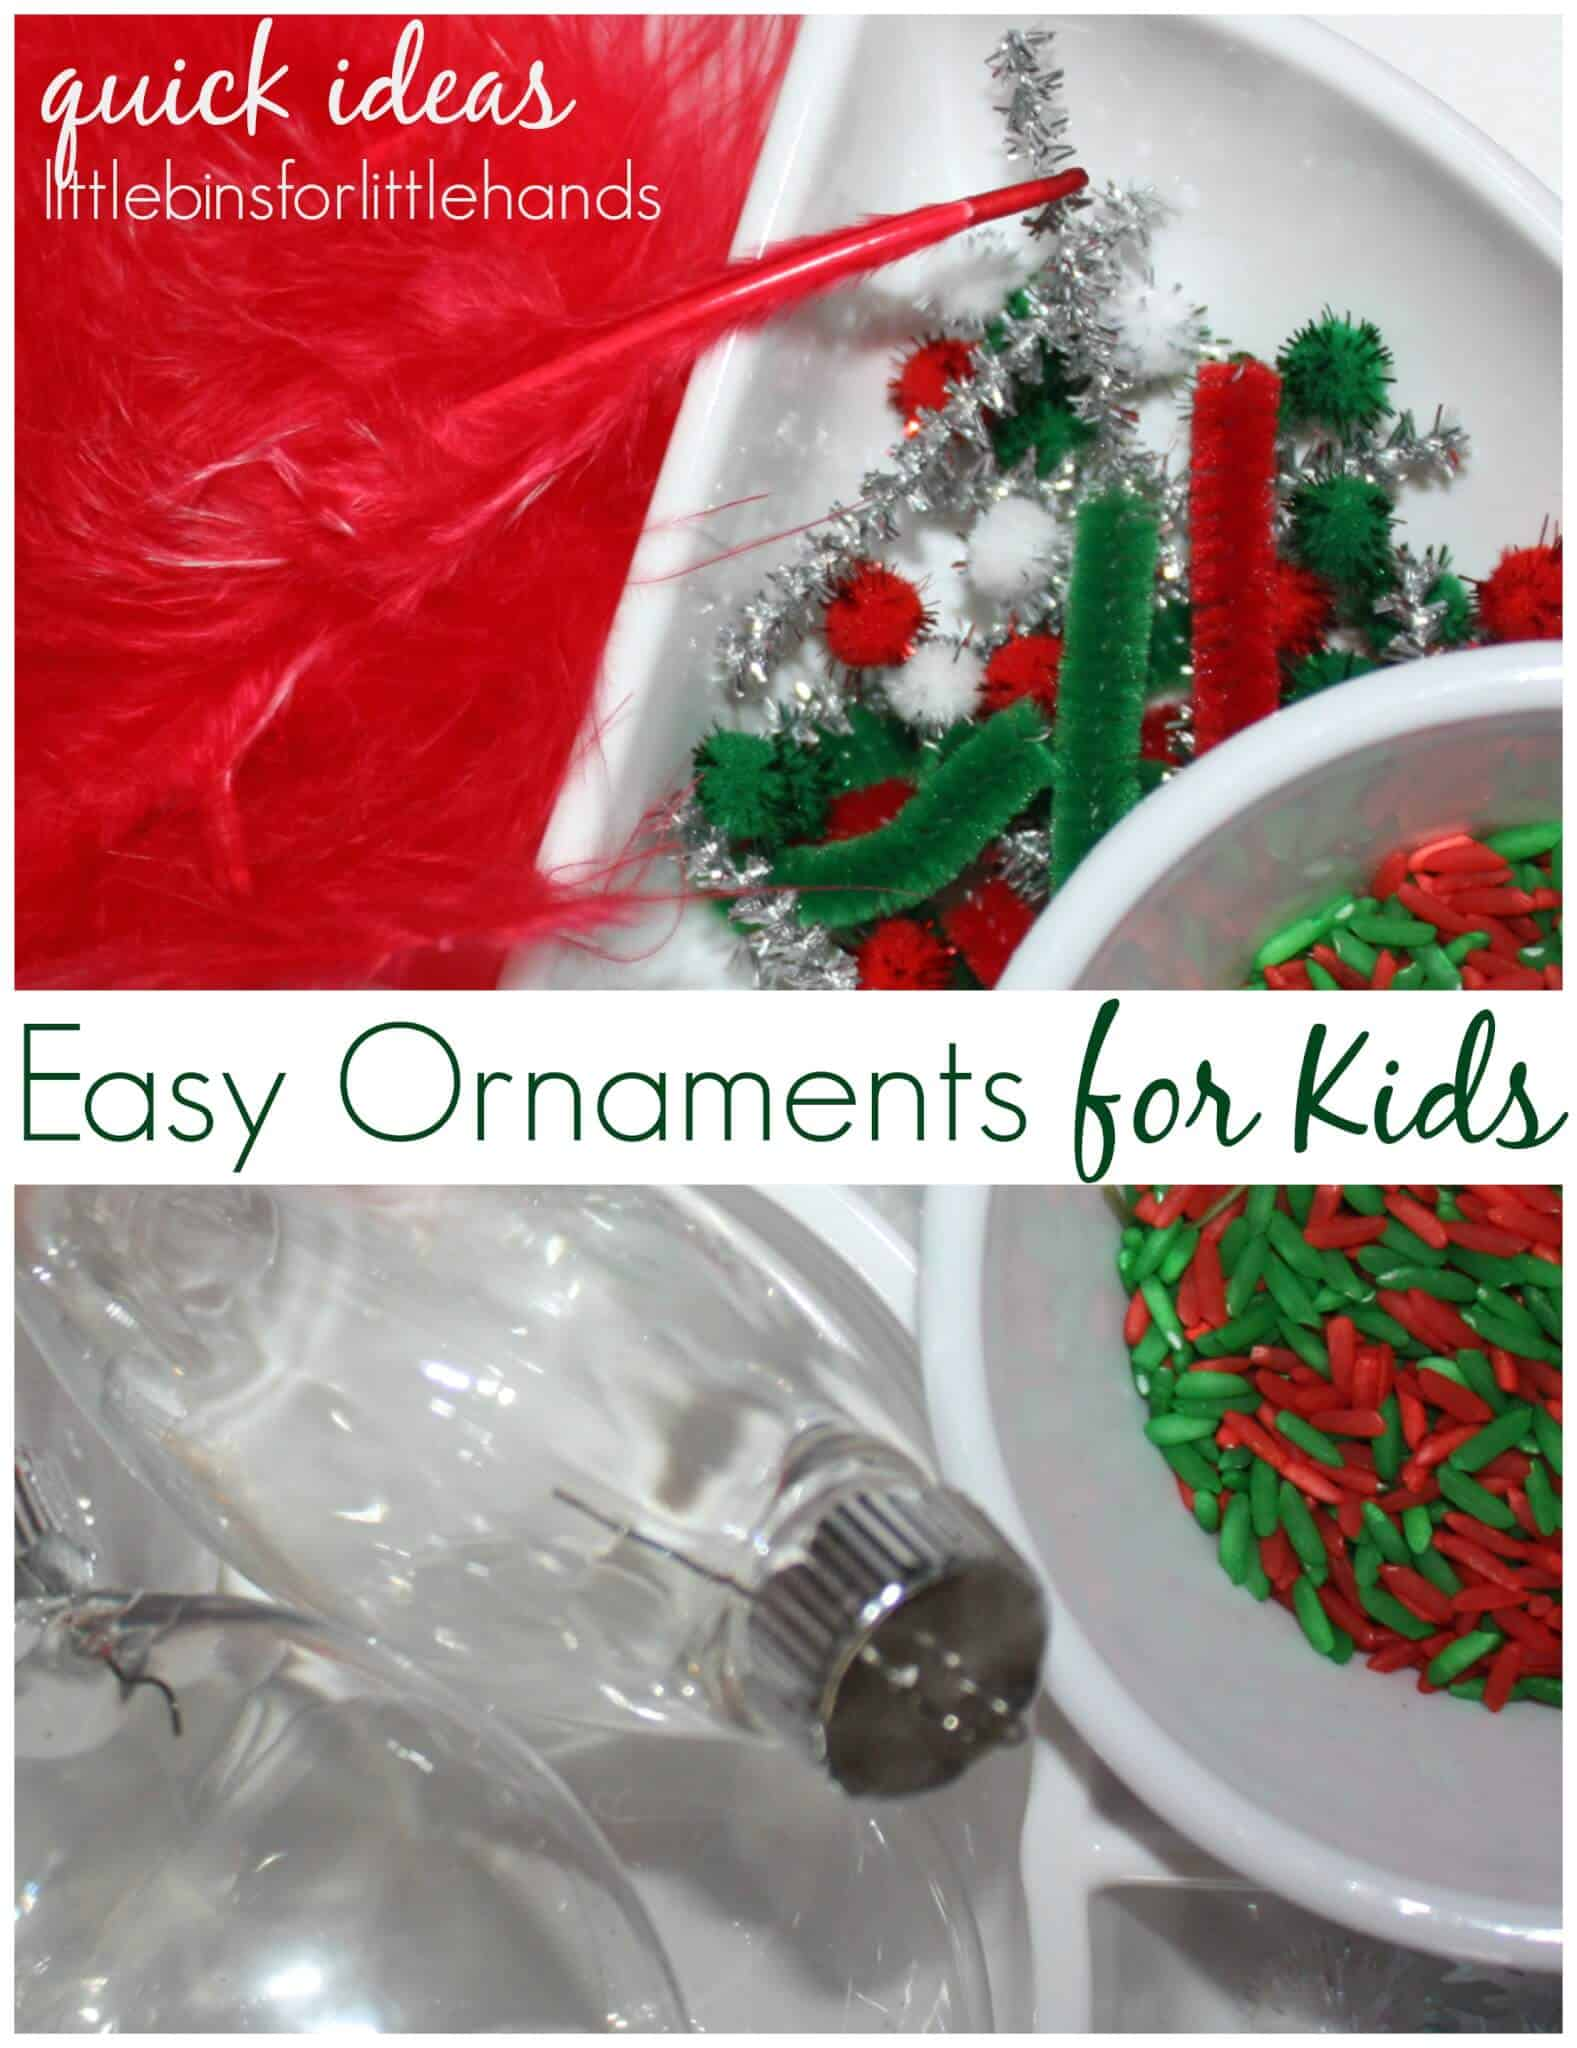 Easy Ornaments For Kids | Little Bins for Little Hands